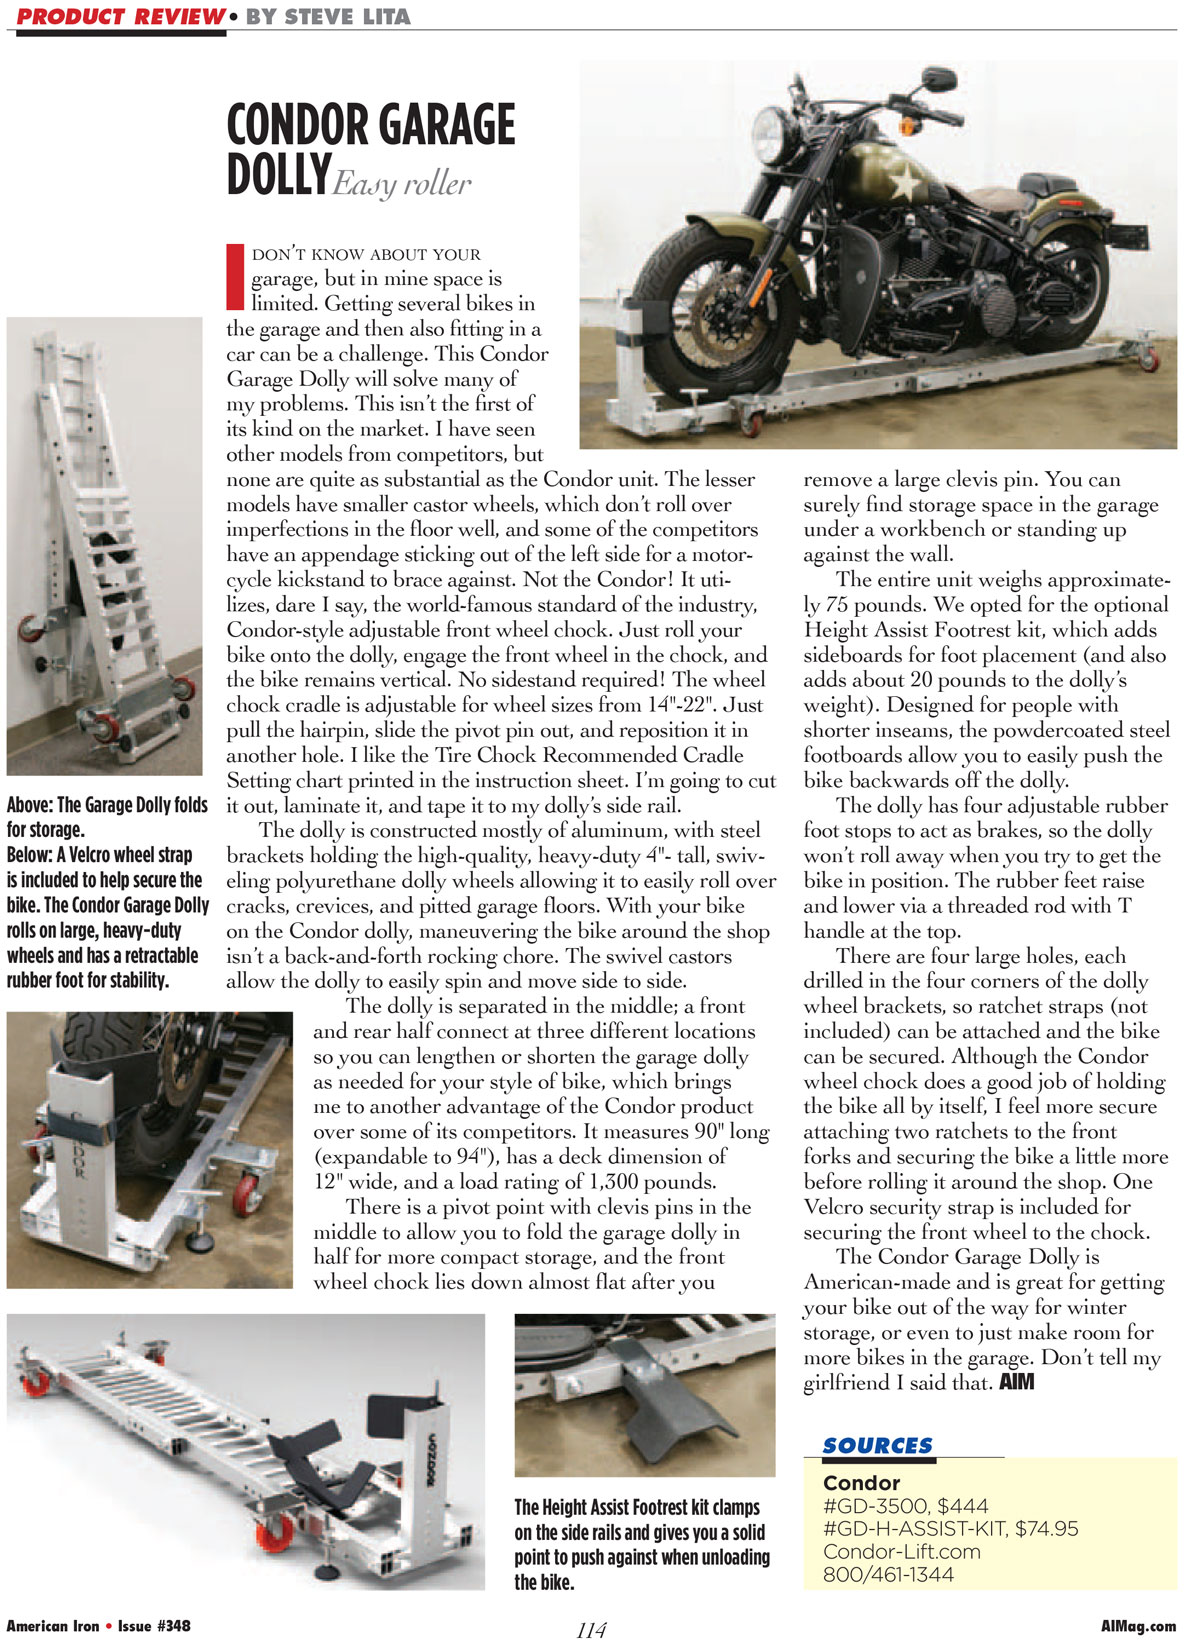 American Iron Magazine Reviews Condor Garage Dolly